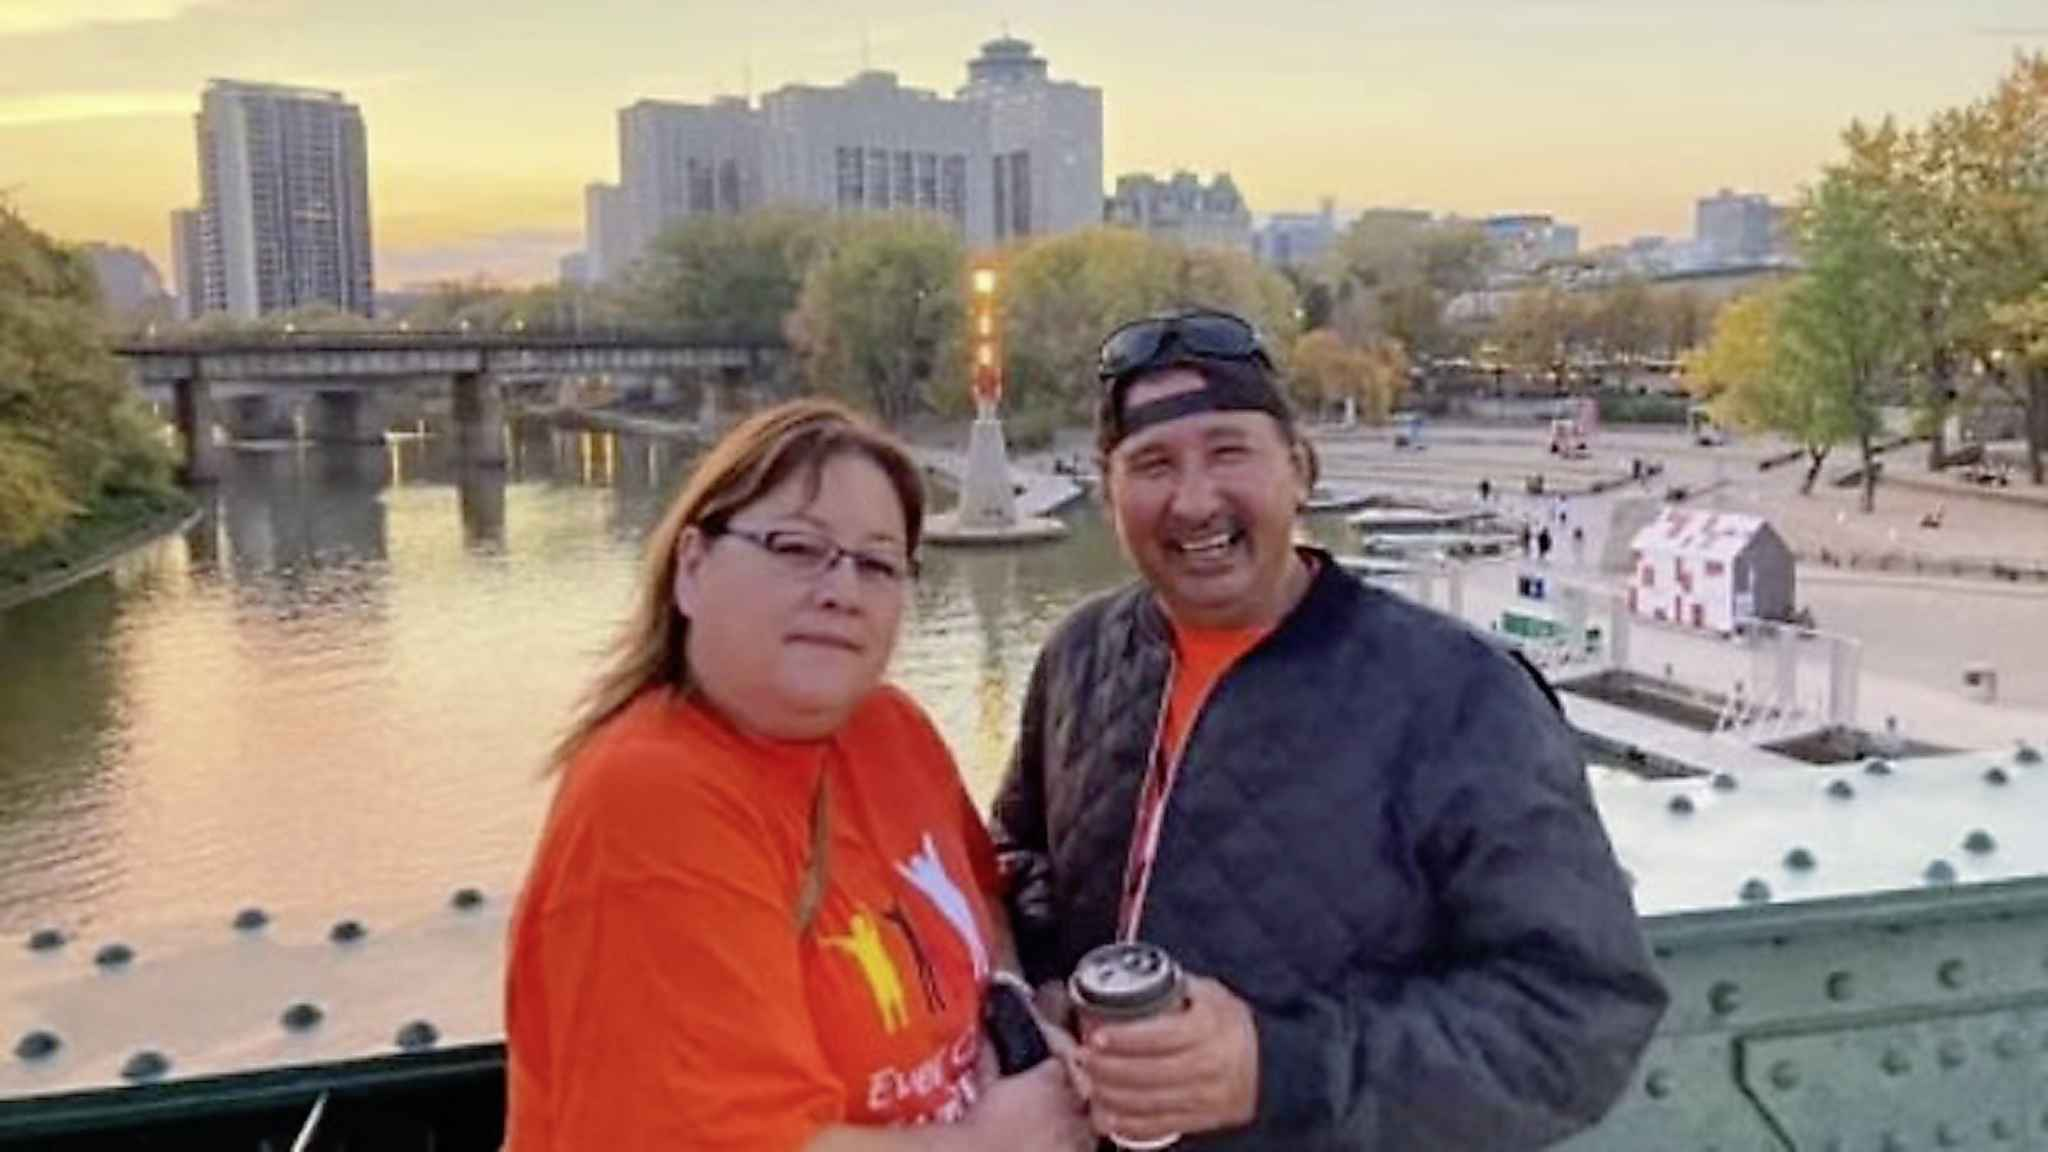 Family of Bernice Catcheway, pictured here with her husband, Wilfred, are asking for prayers for her full recovery from COVID-19. (Submitted by Willie Starr)